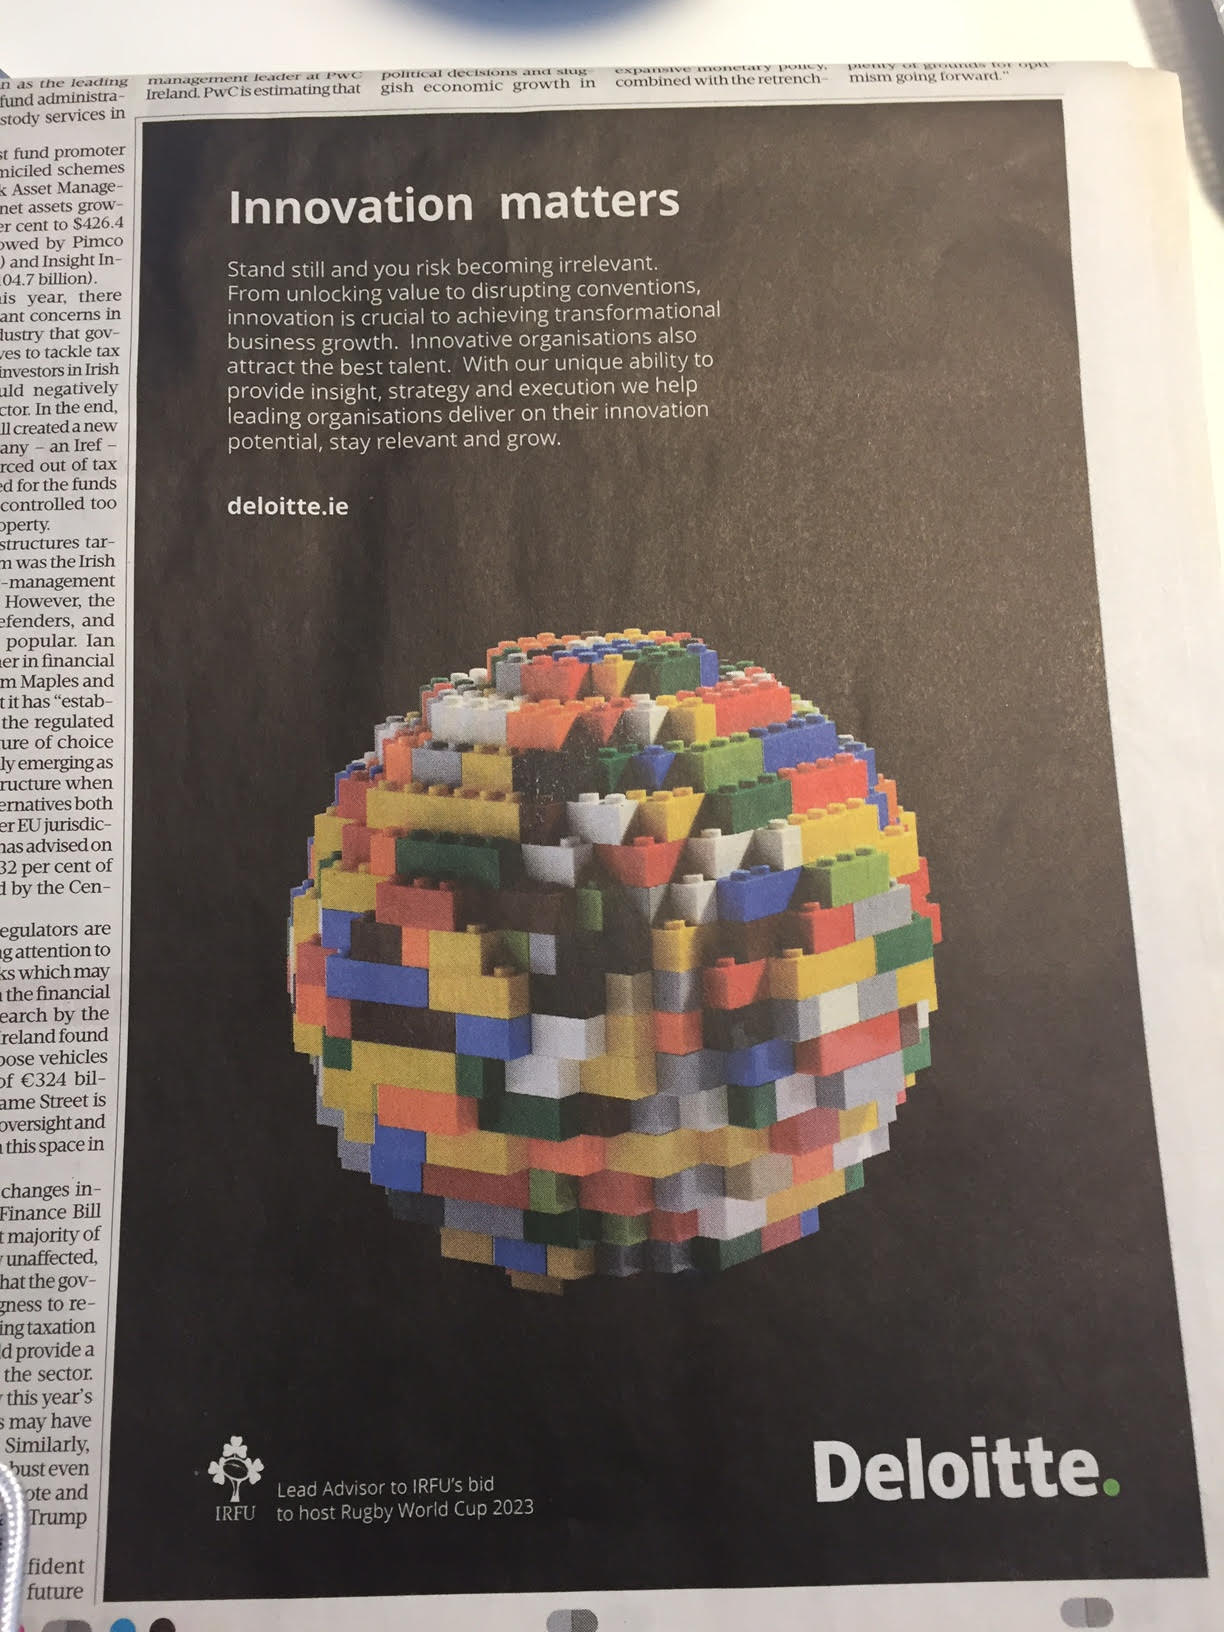 Deloitte – Innovation matters